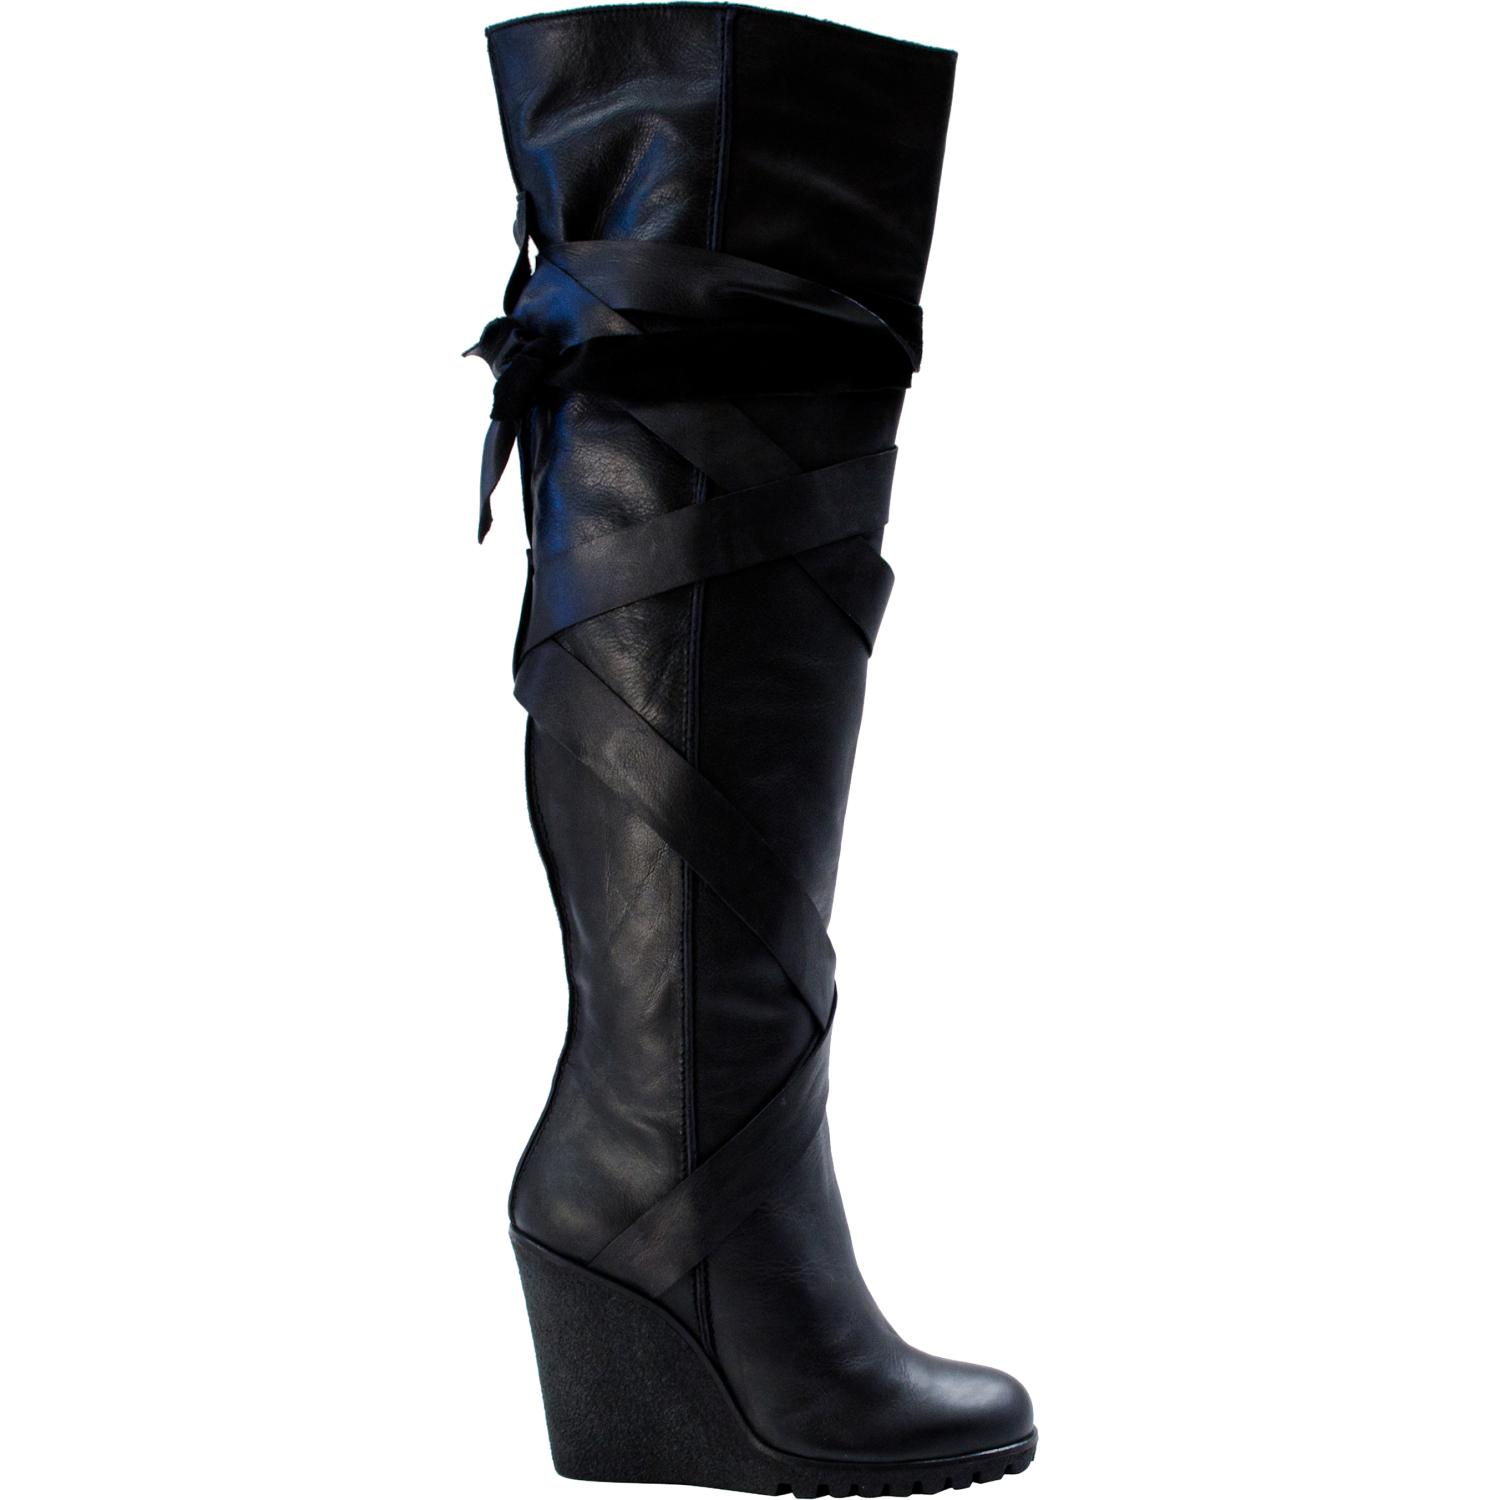 Regina Over The Knee Wedge Boots Black Paolo Shoes